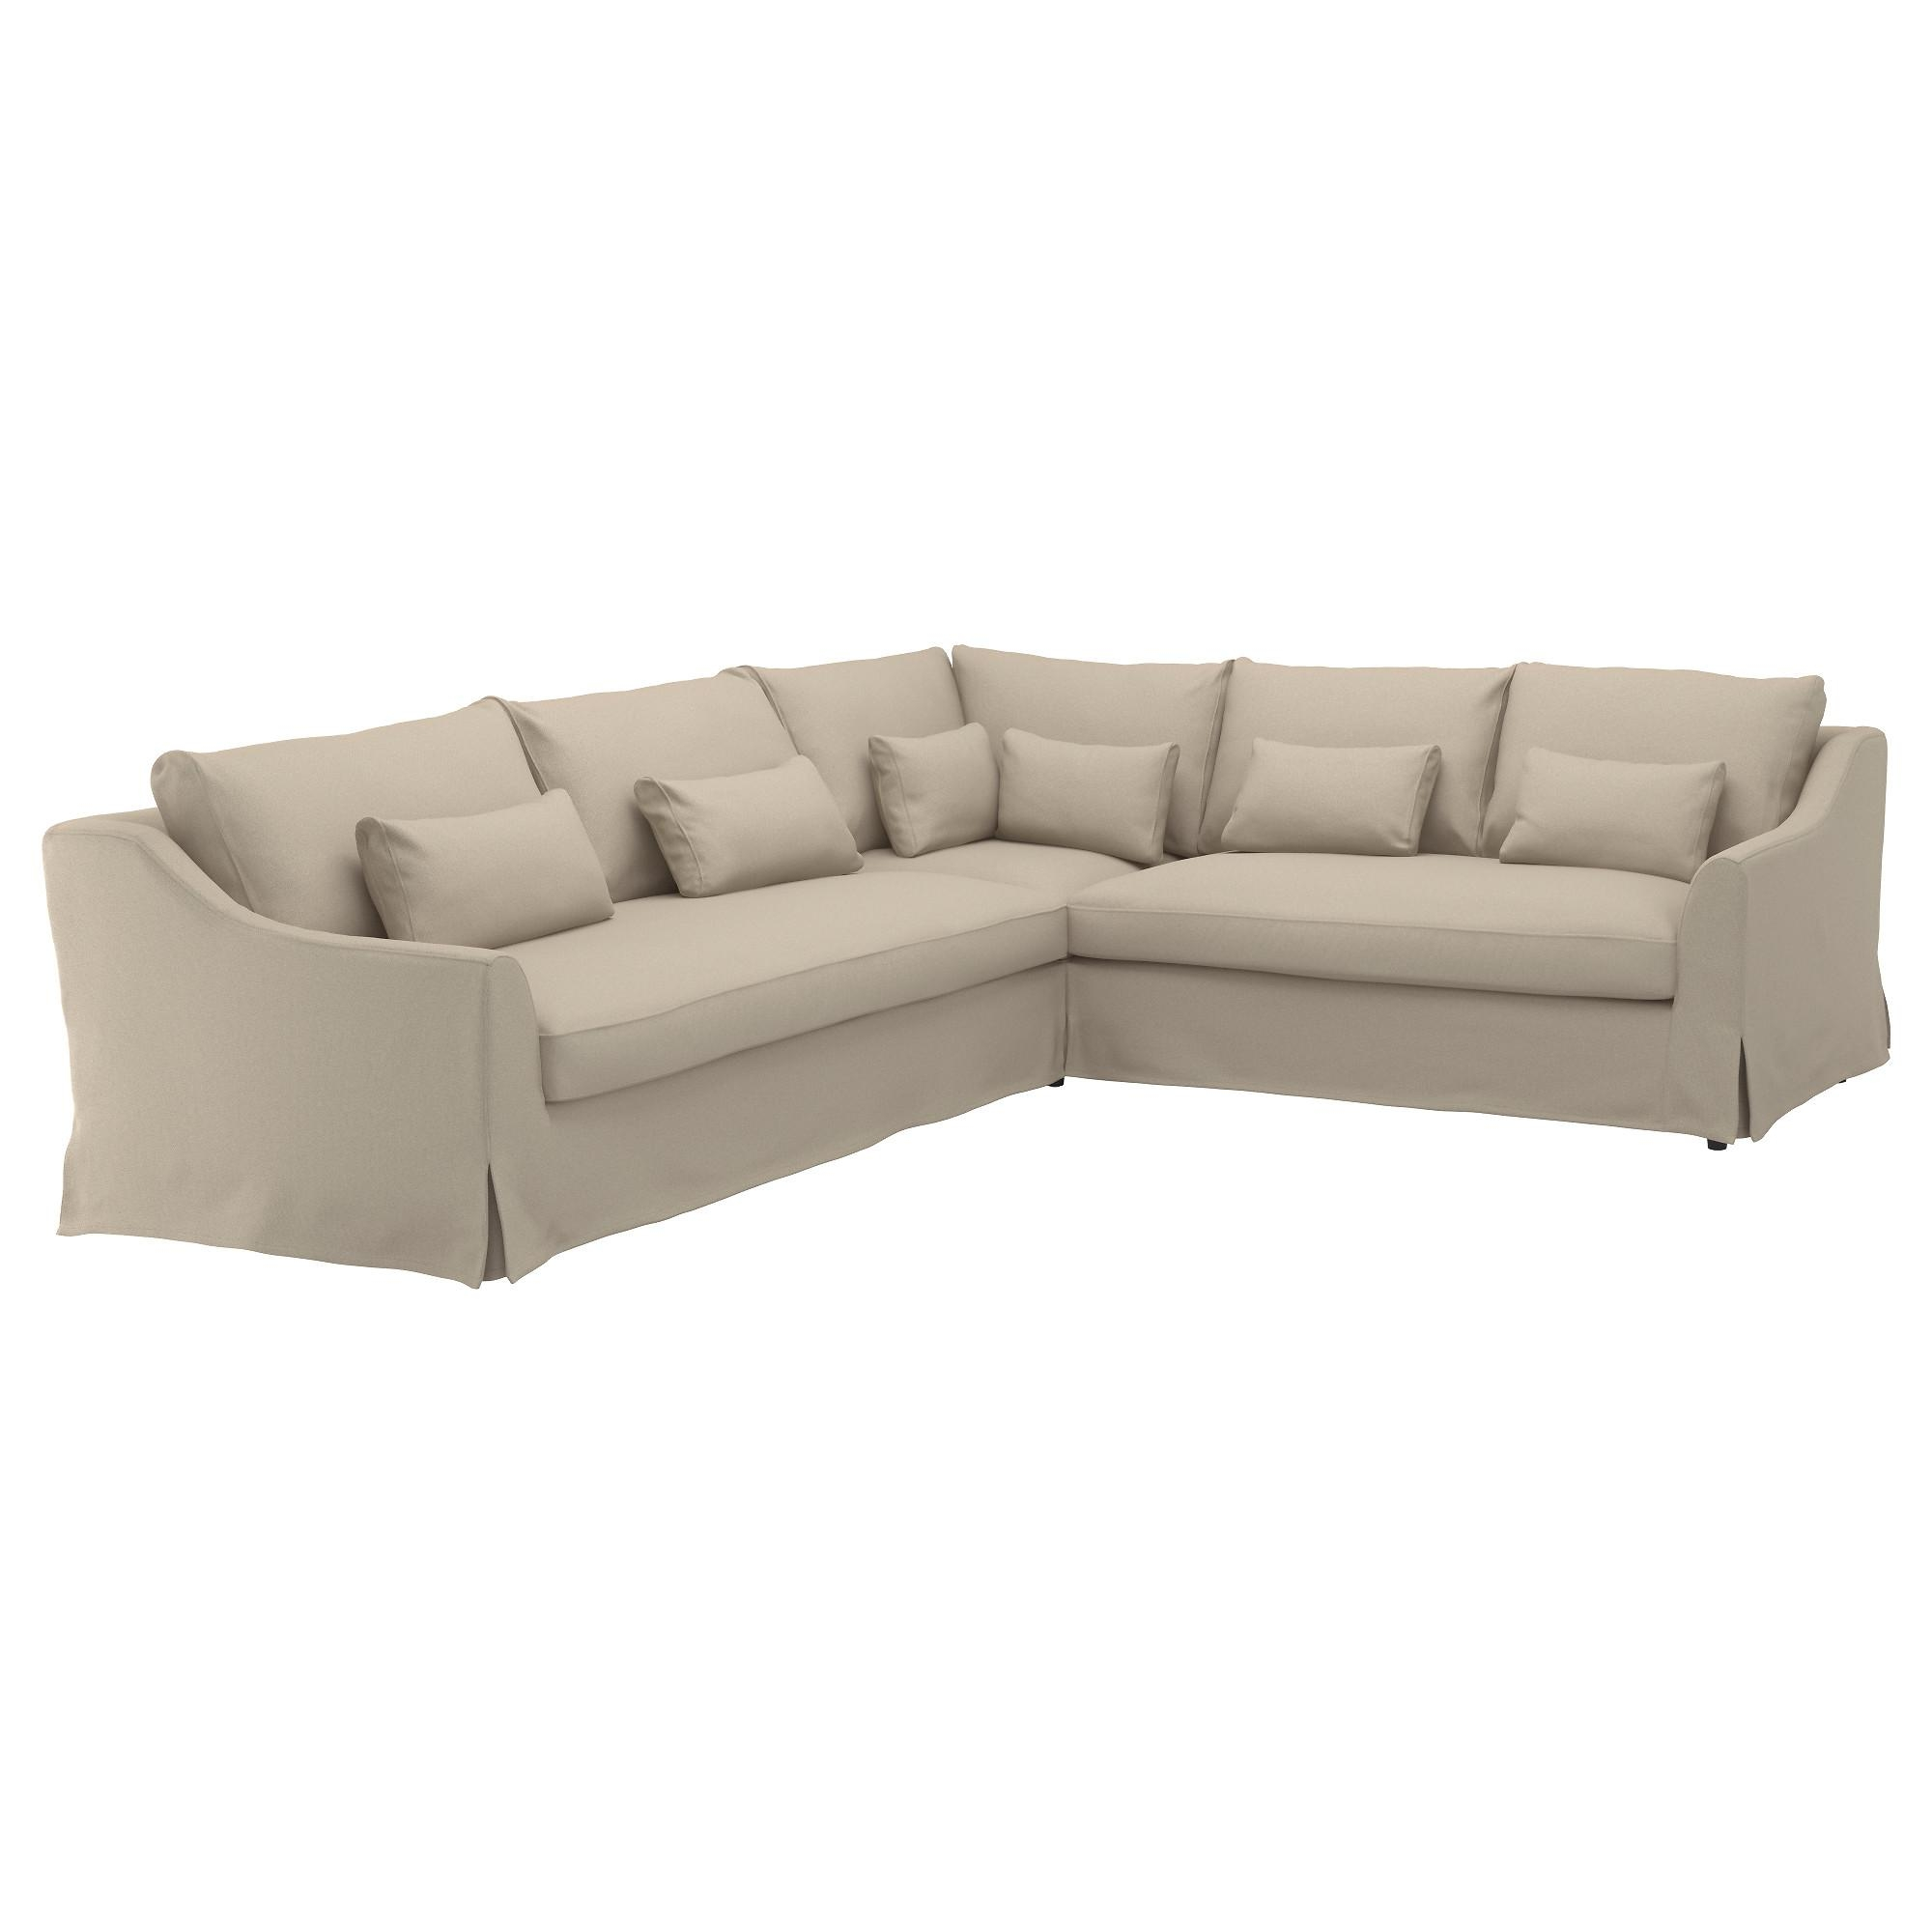 high quality fabric sectional sofa cheap sofas 15 best ideas furniture sectionals ikea